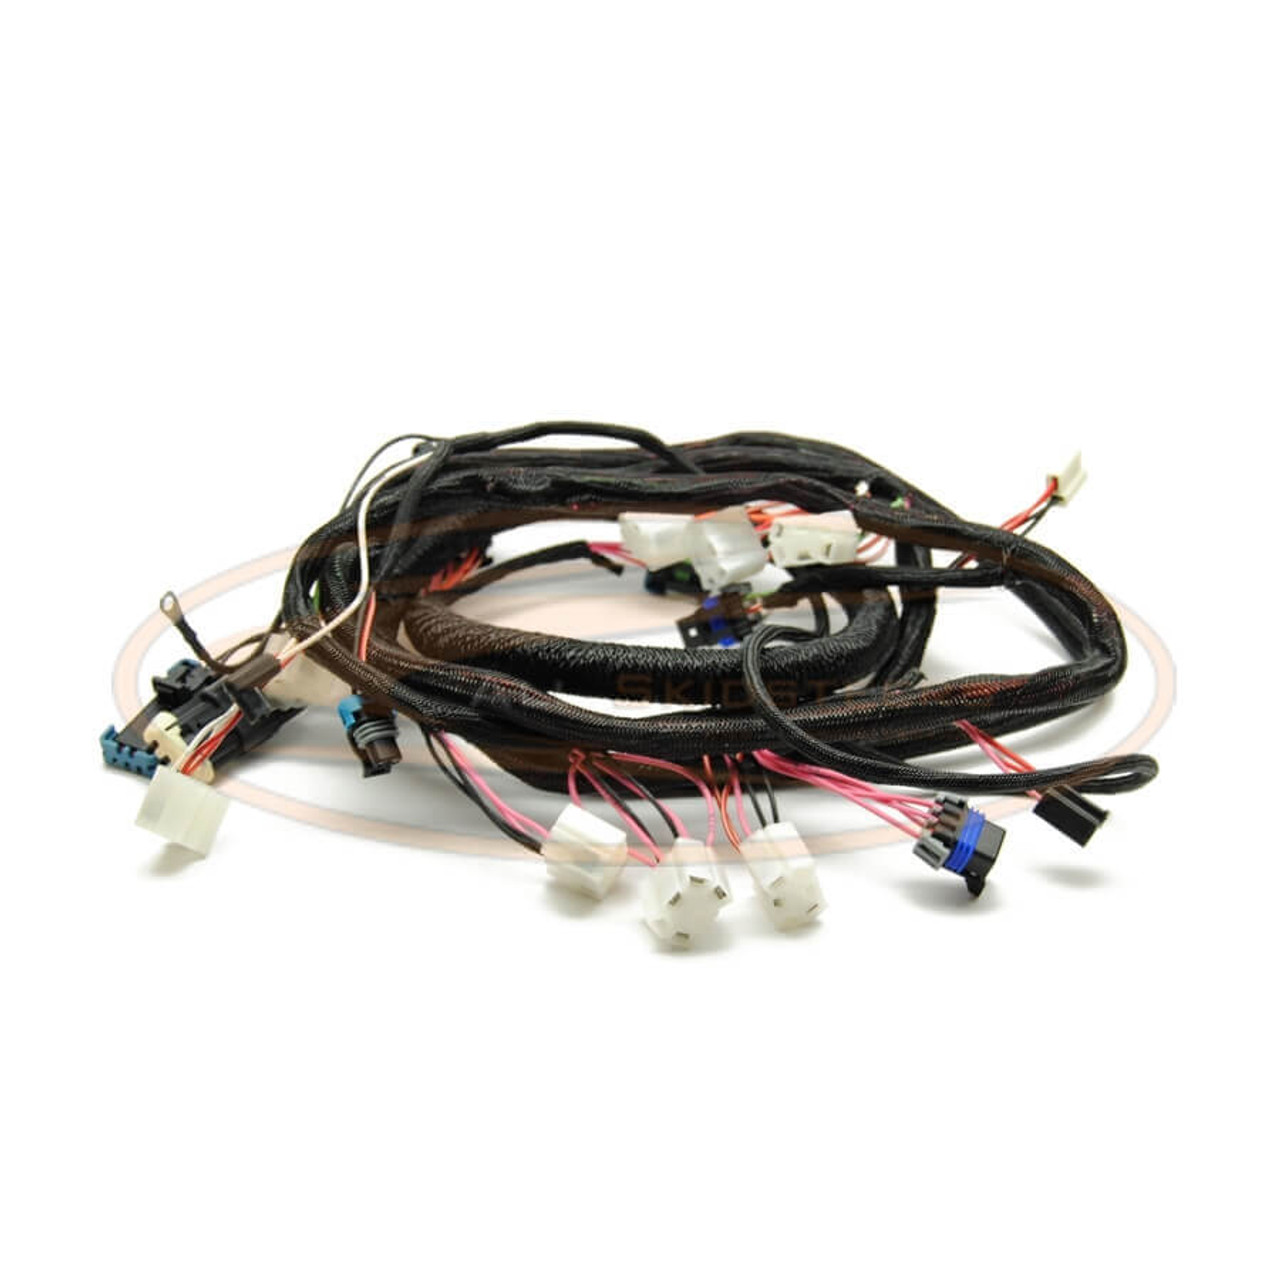 Cab Wiring Harness ( Deluxe ) for Bobcat® Skid Steer | Replaces OEM #  6727190 - All Skidsteers, Inc.AllSkidsteers